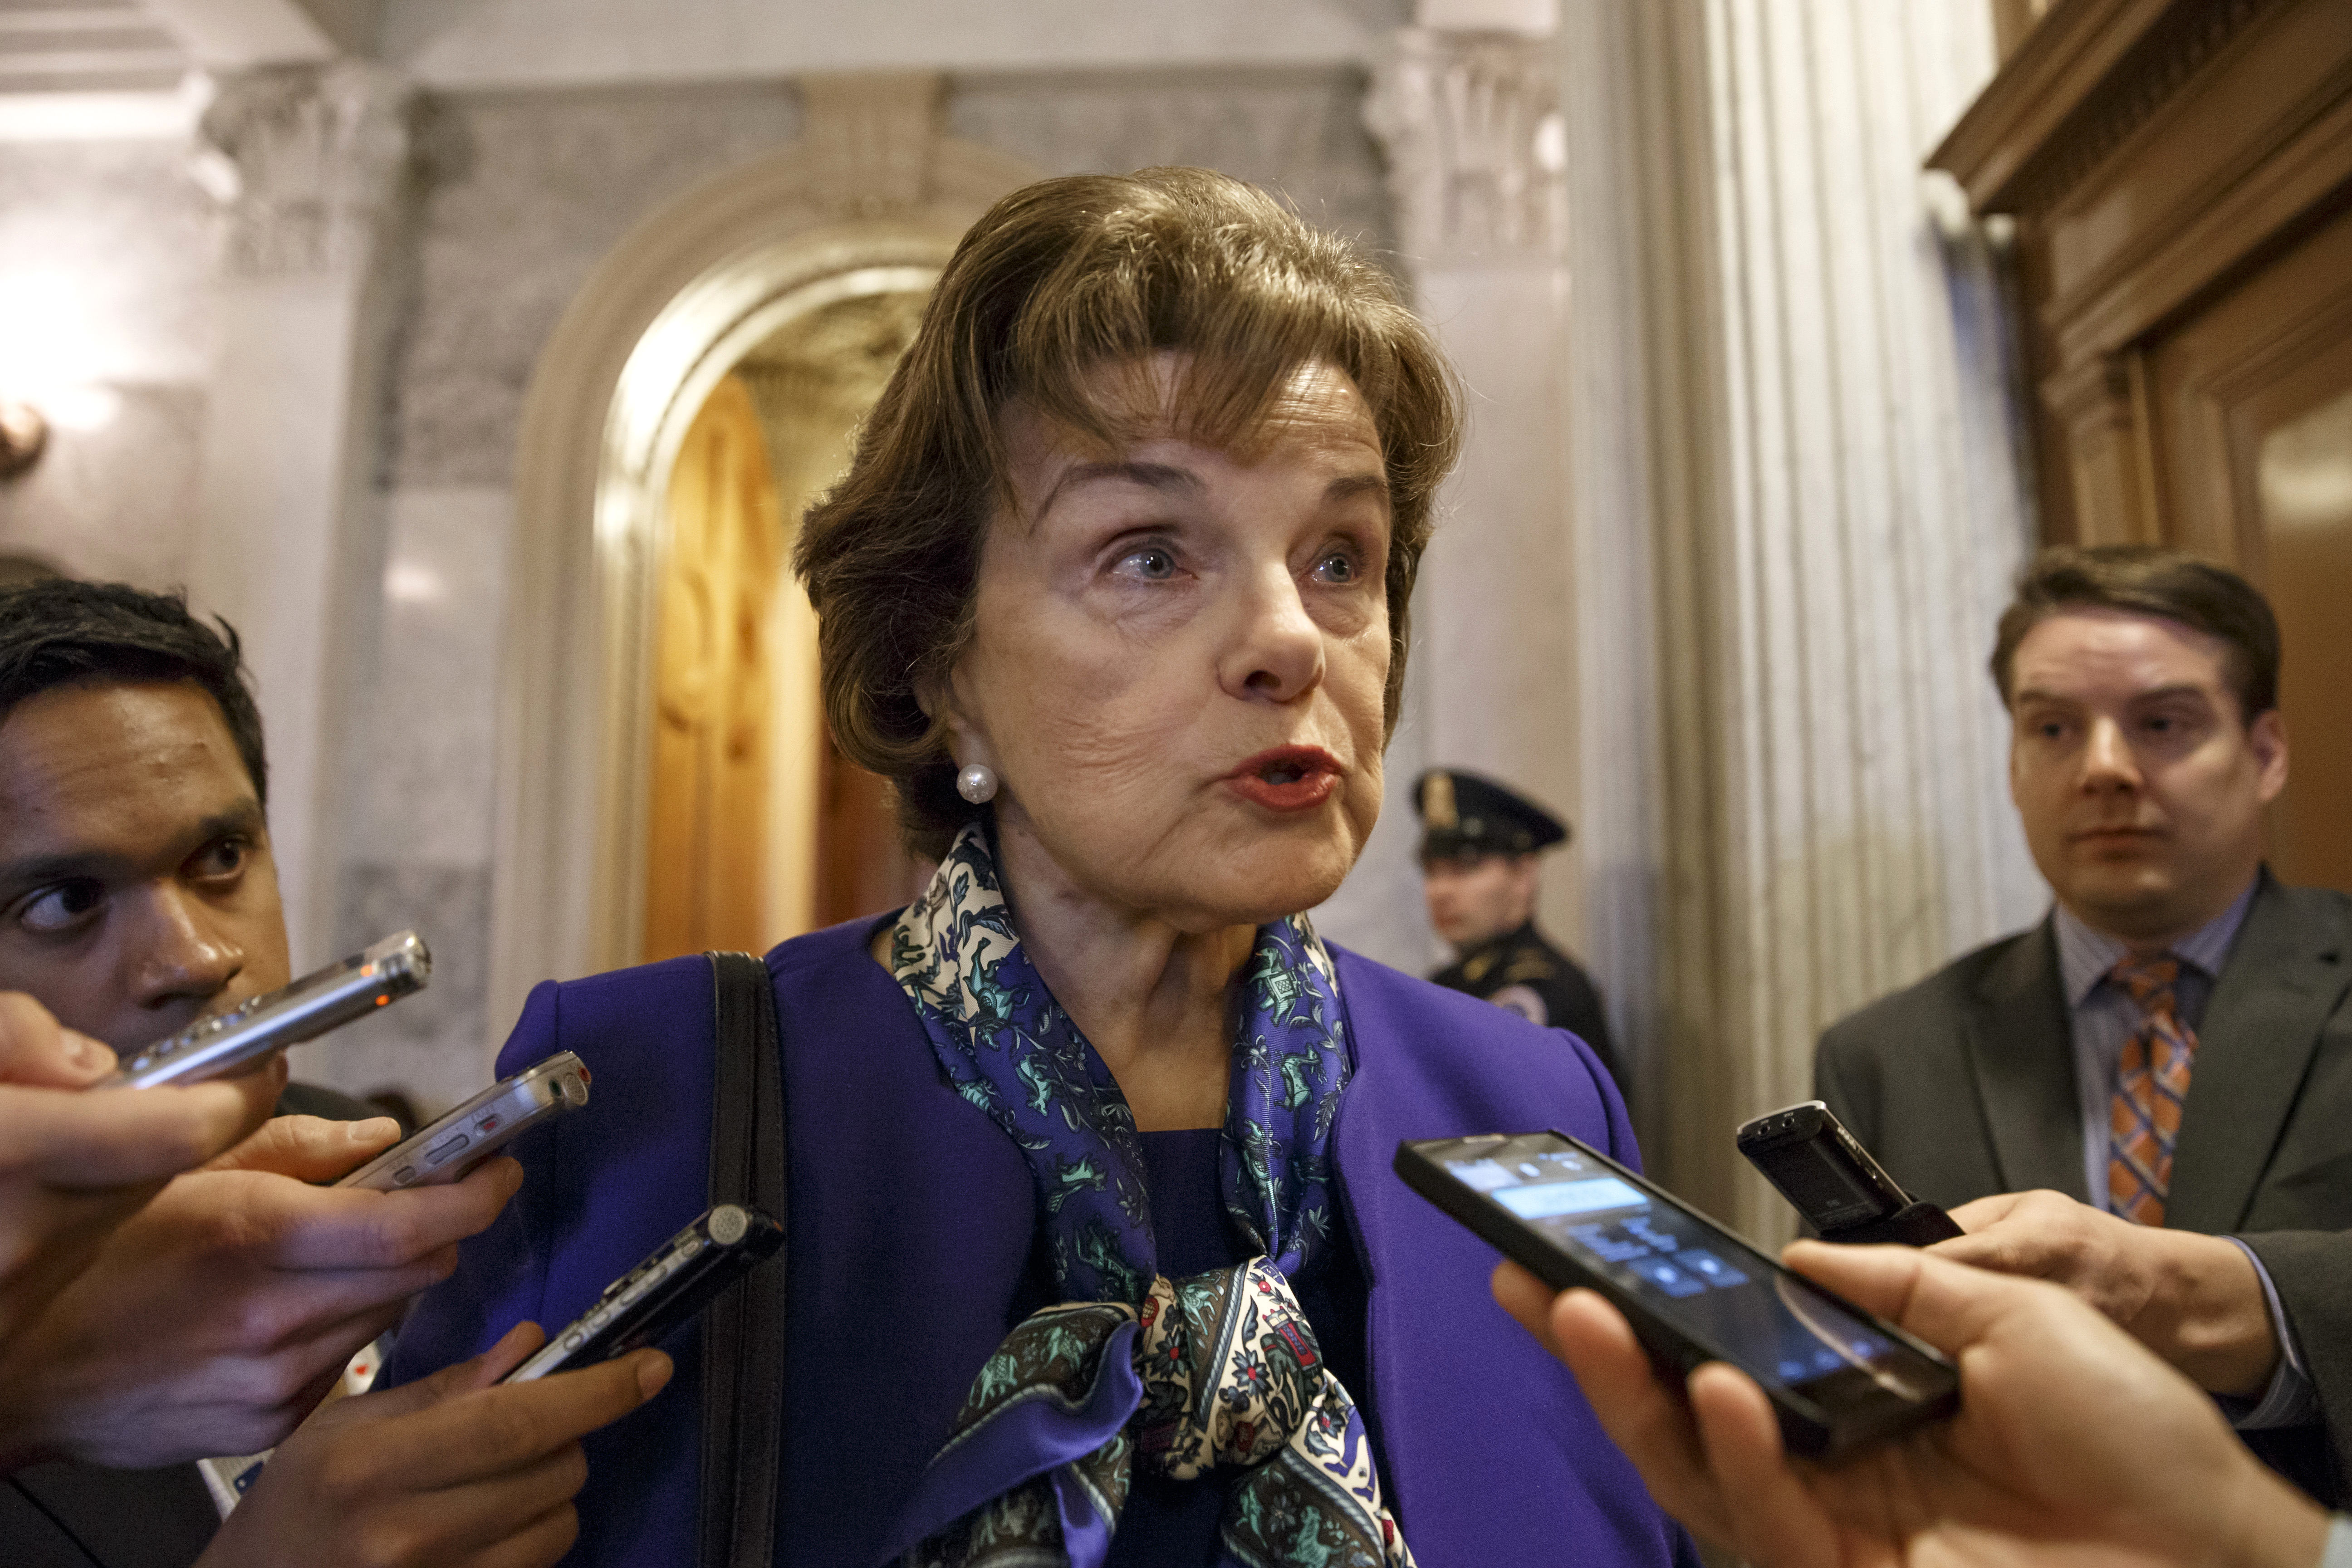 Senate Intelligence Committee Chair Senator Dianne Feinstein talks to reporters as she leaves the Senate chamber on Capitol Hill in Washington, Tuesday, March 11, 2014, after saying that the CIA's improper search of a stand-alone computer network established for Congress has been referred to the Justice Department. The issue stems from the investigation into allegations of CIA abuse in a Bush-era detention and interrogation program.